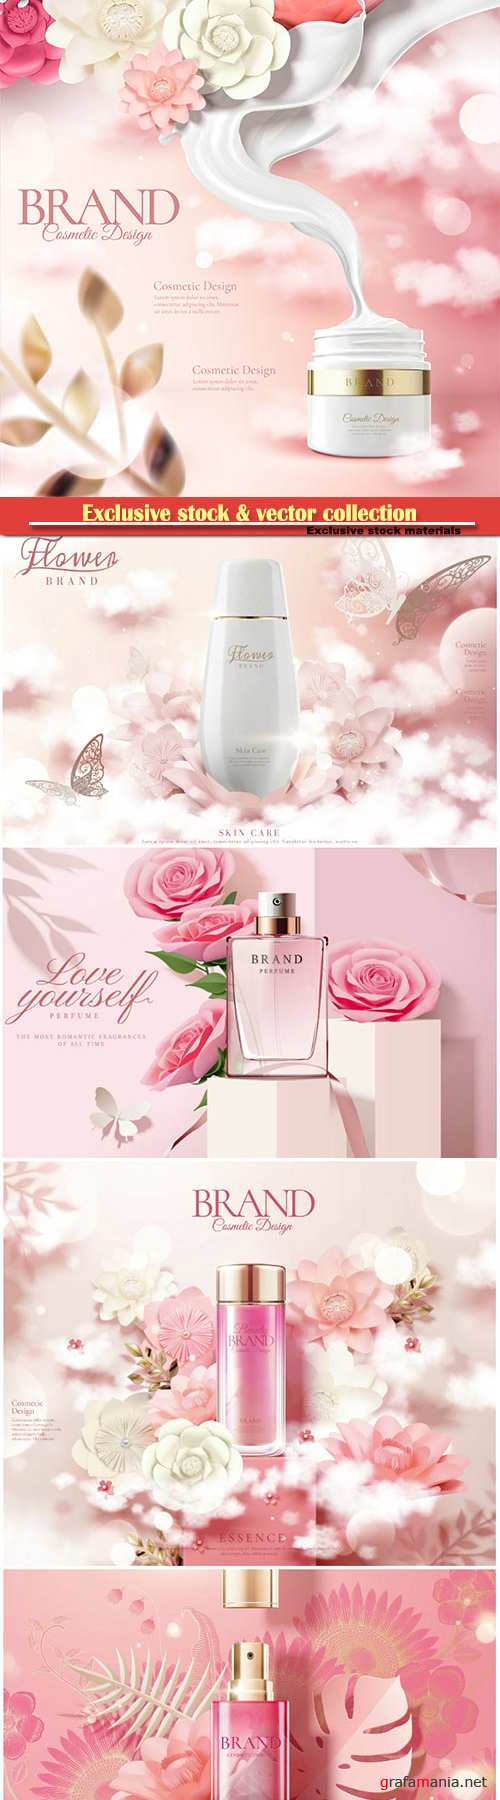 Skincare bottle ads with white and pink paper flowers in 3d illustration